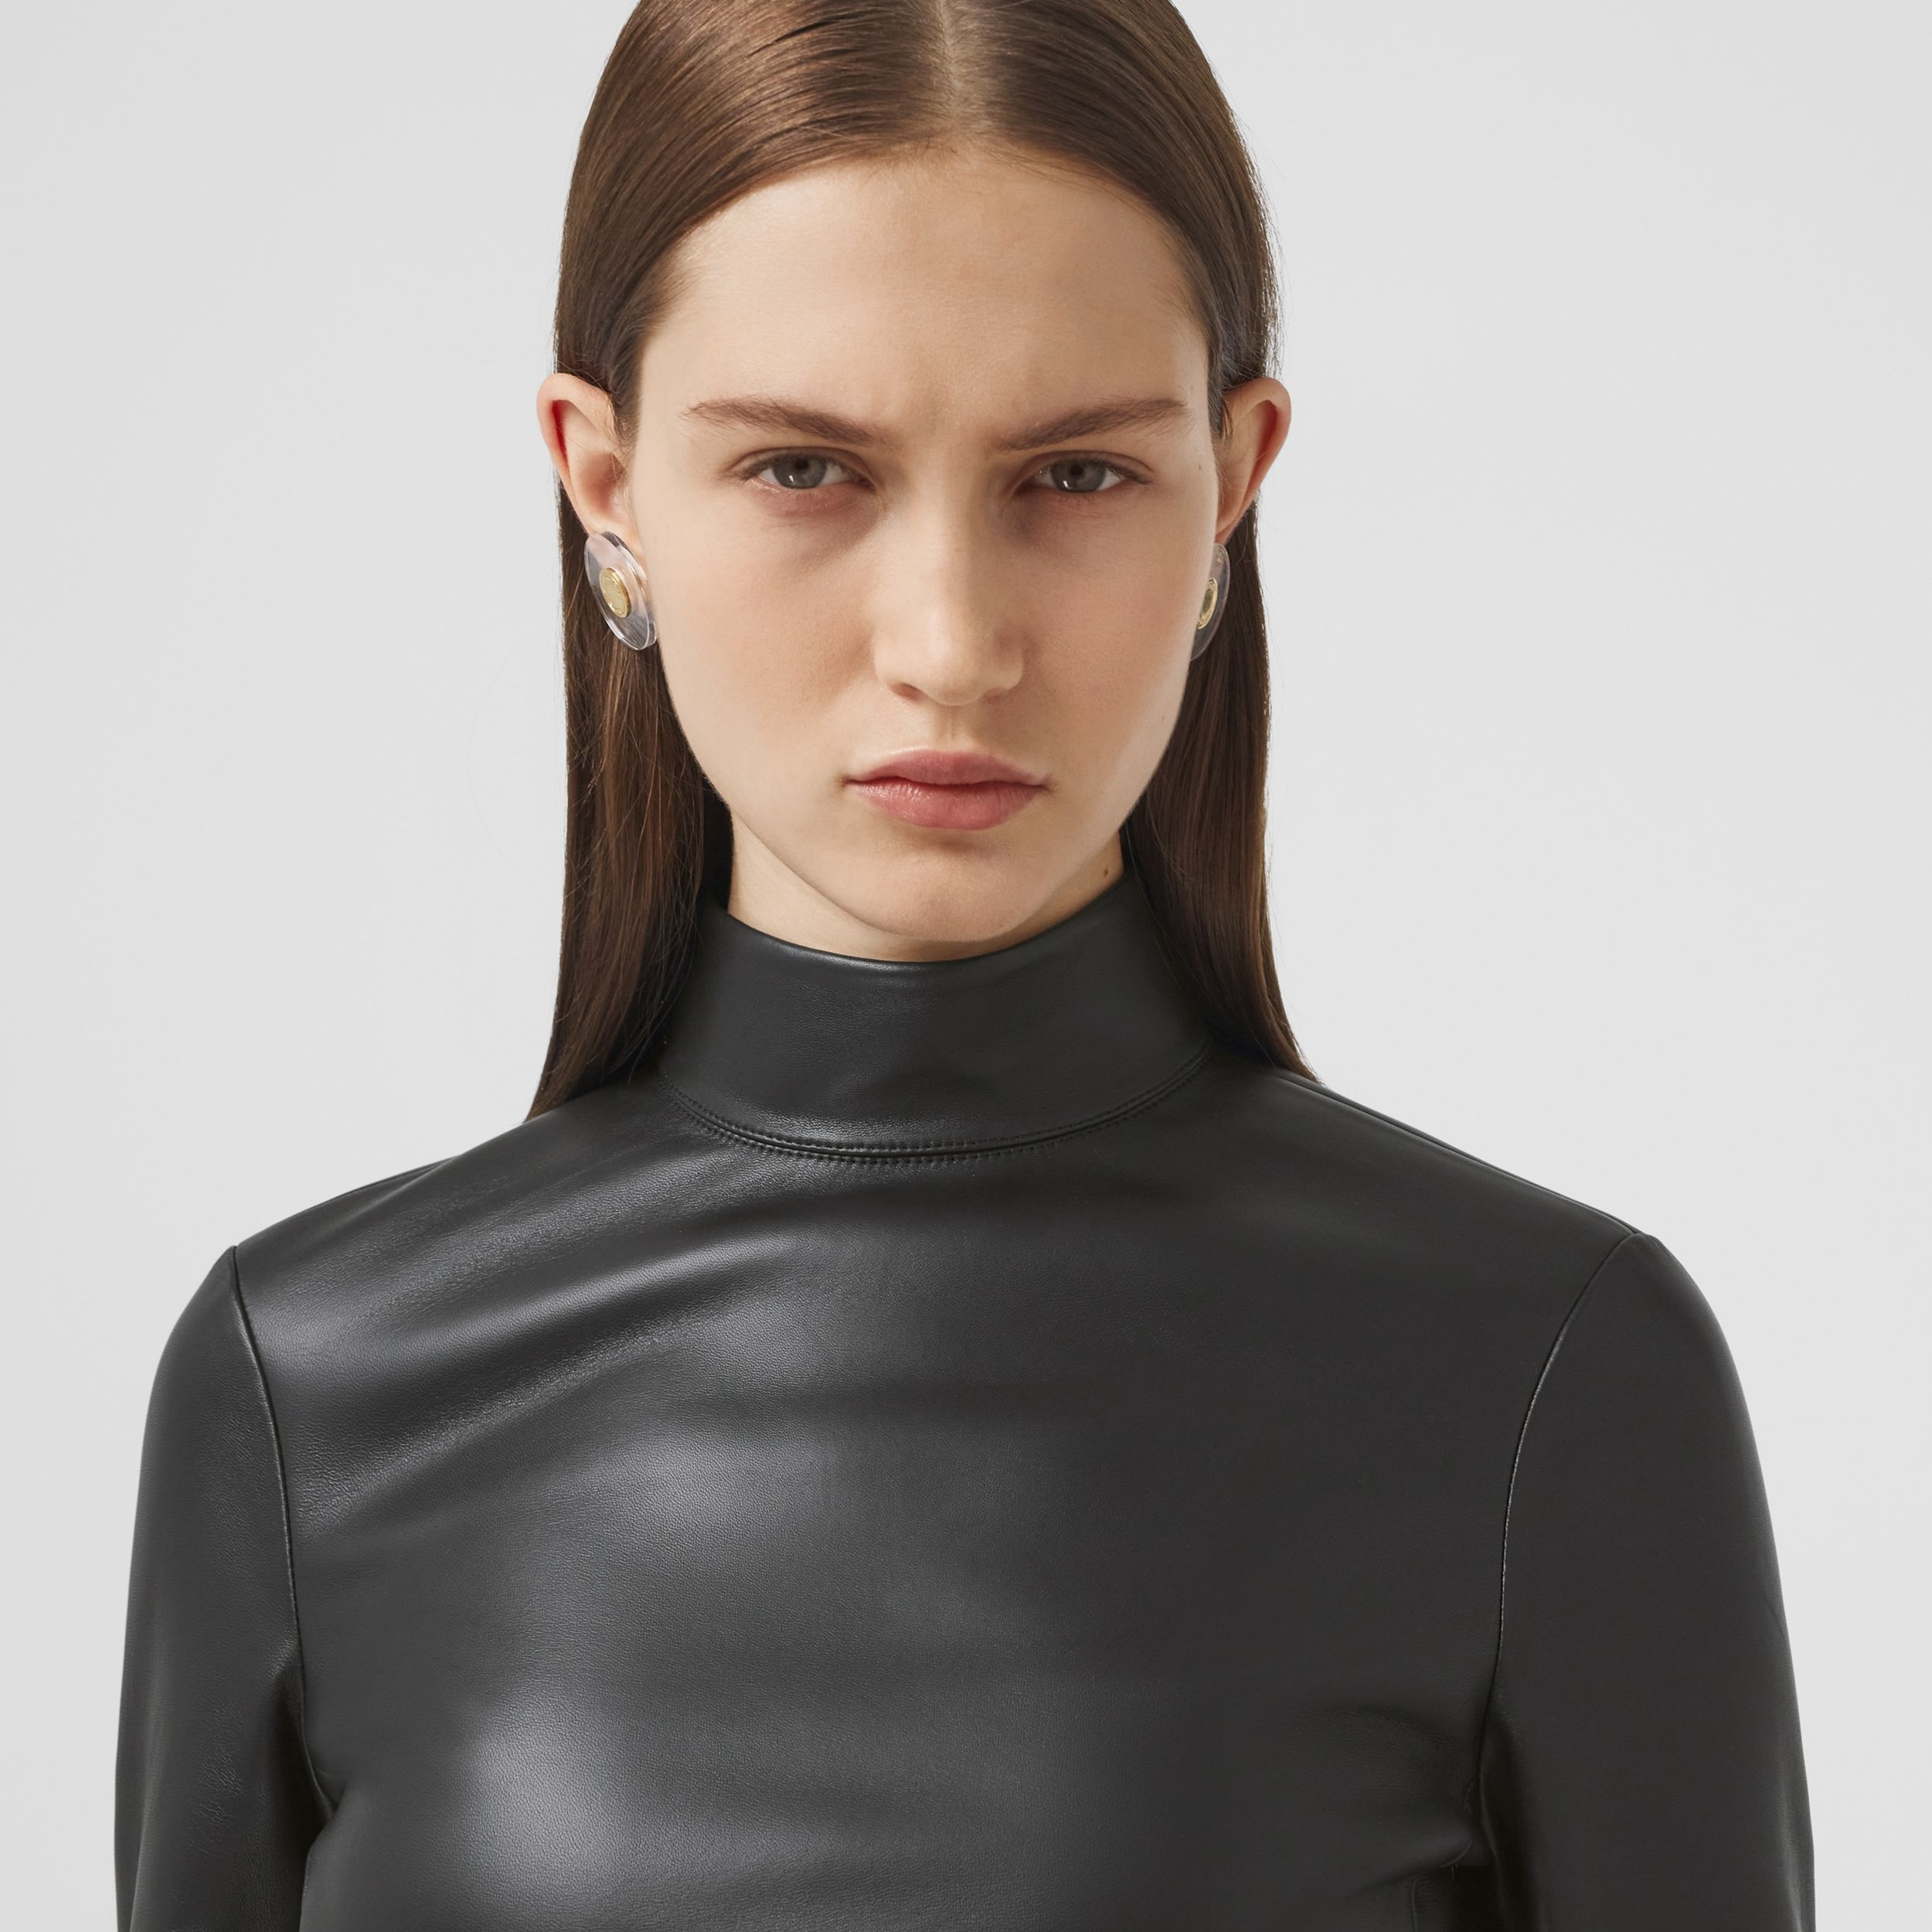 Stretch Lambskin Turtleneck Top in Black - Women | Burberry - 2